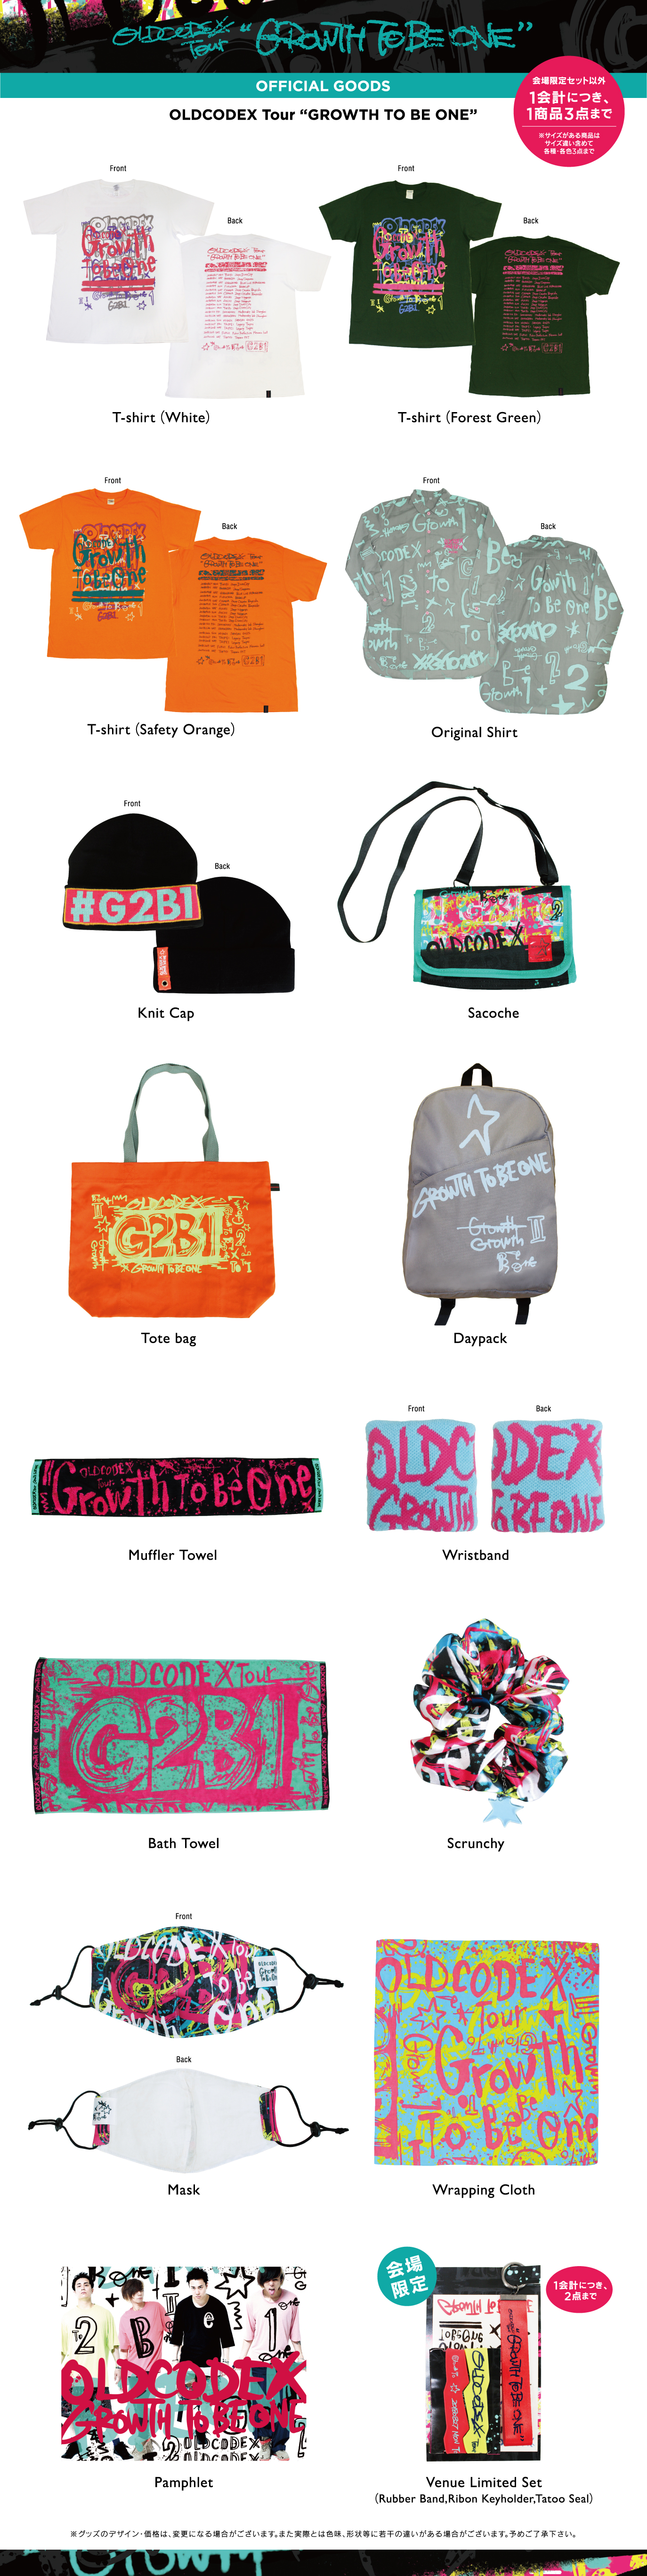 "OLDCODEX Tour ""GROWTH TO BE ONE"" OFFICIAL GOODS"